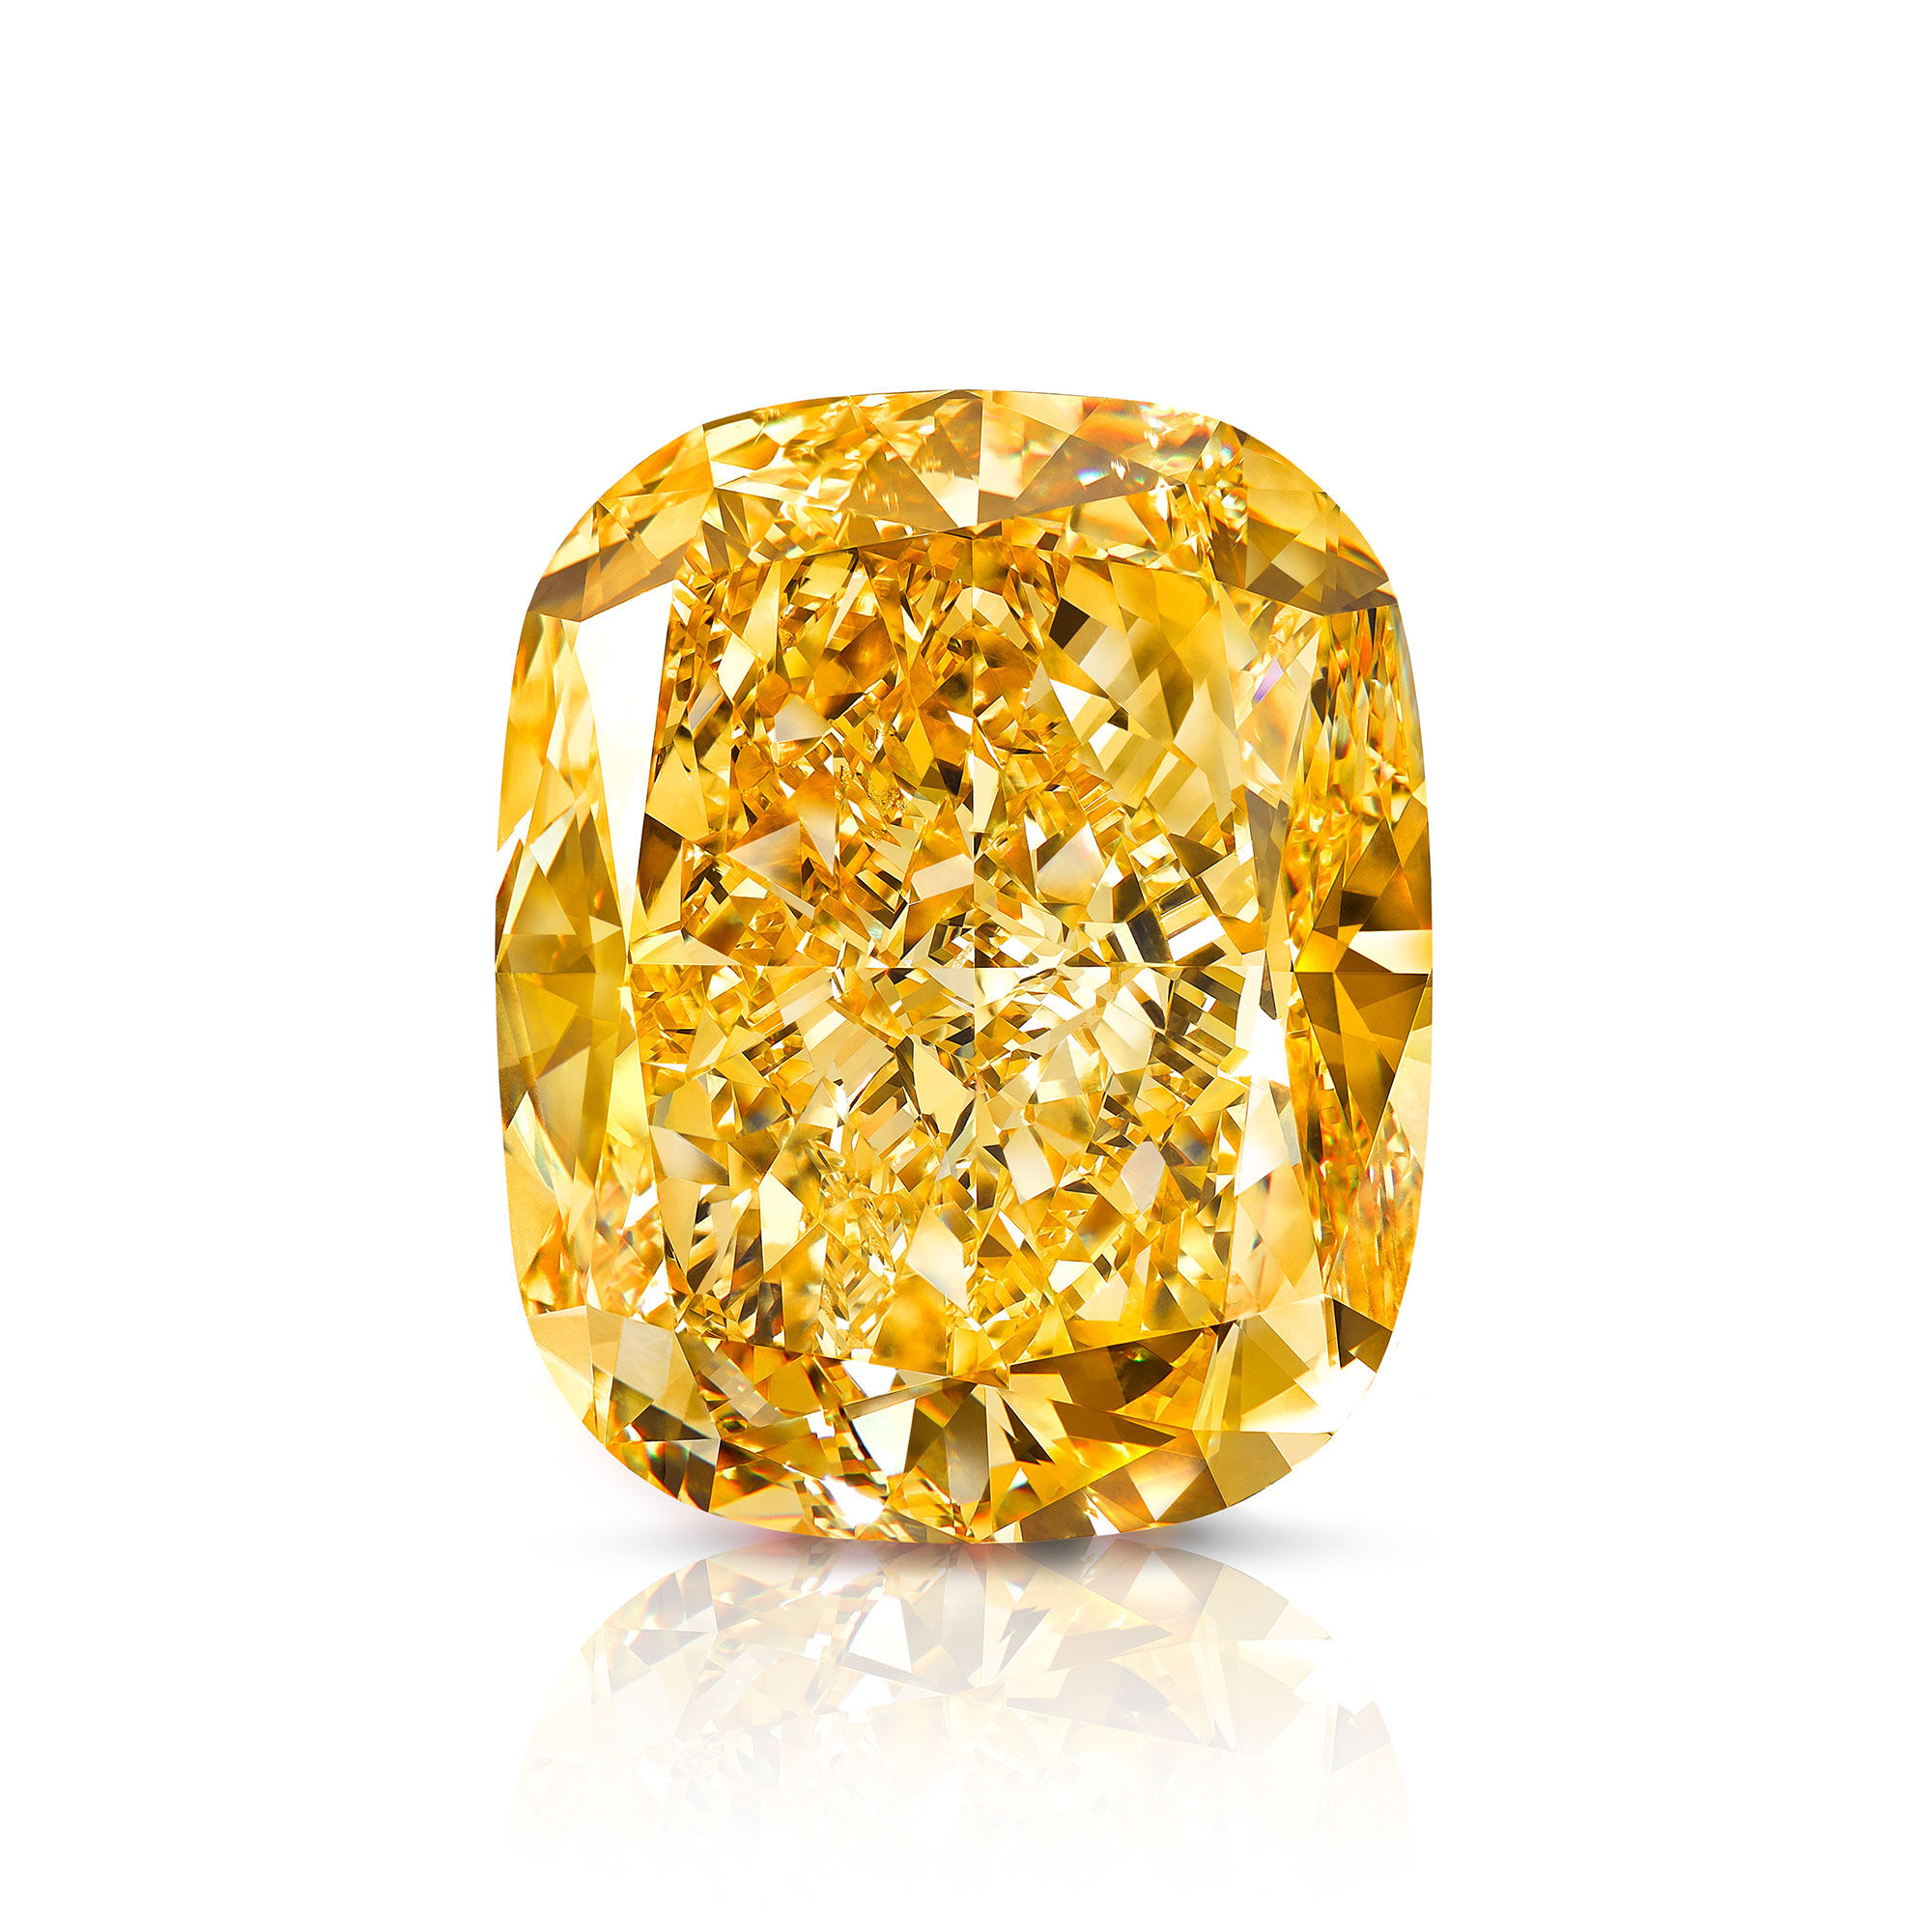 The Golden Empress famous Yellow Diamond from Graff